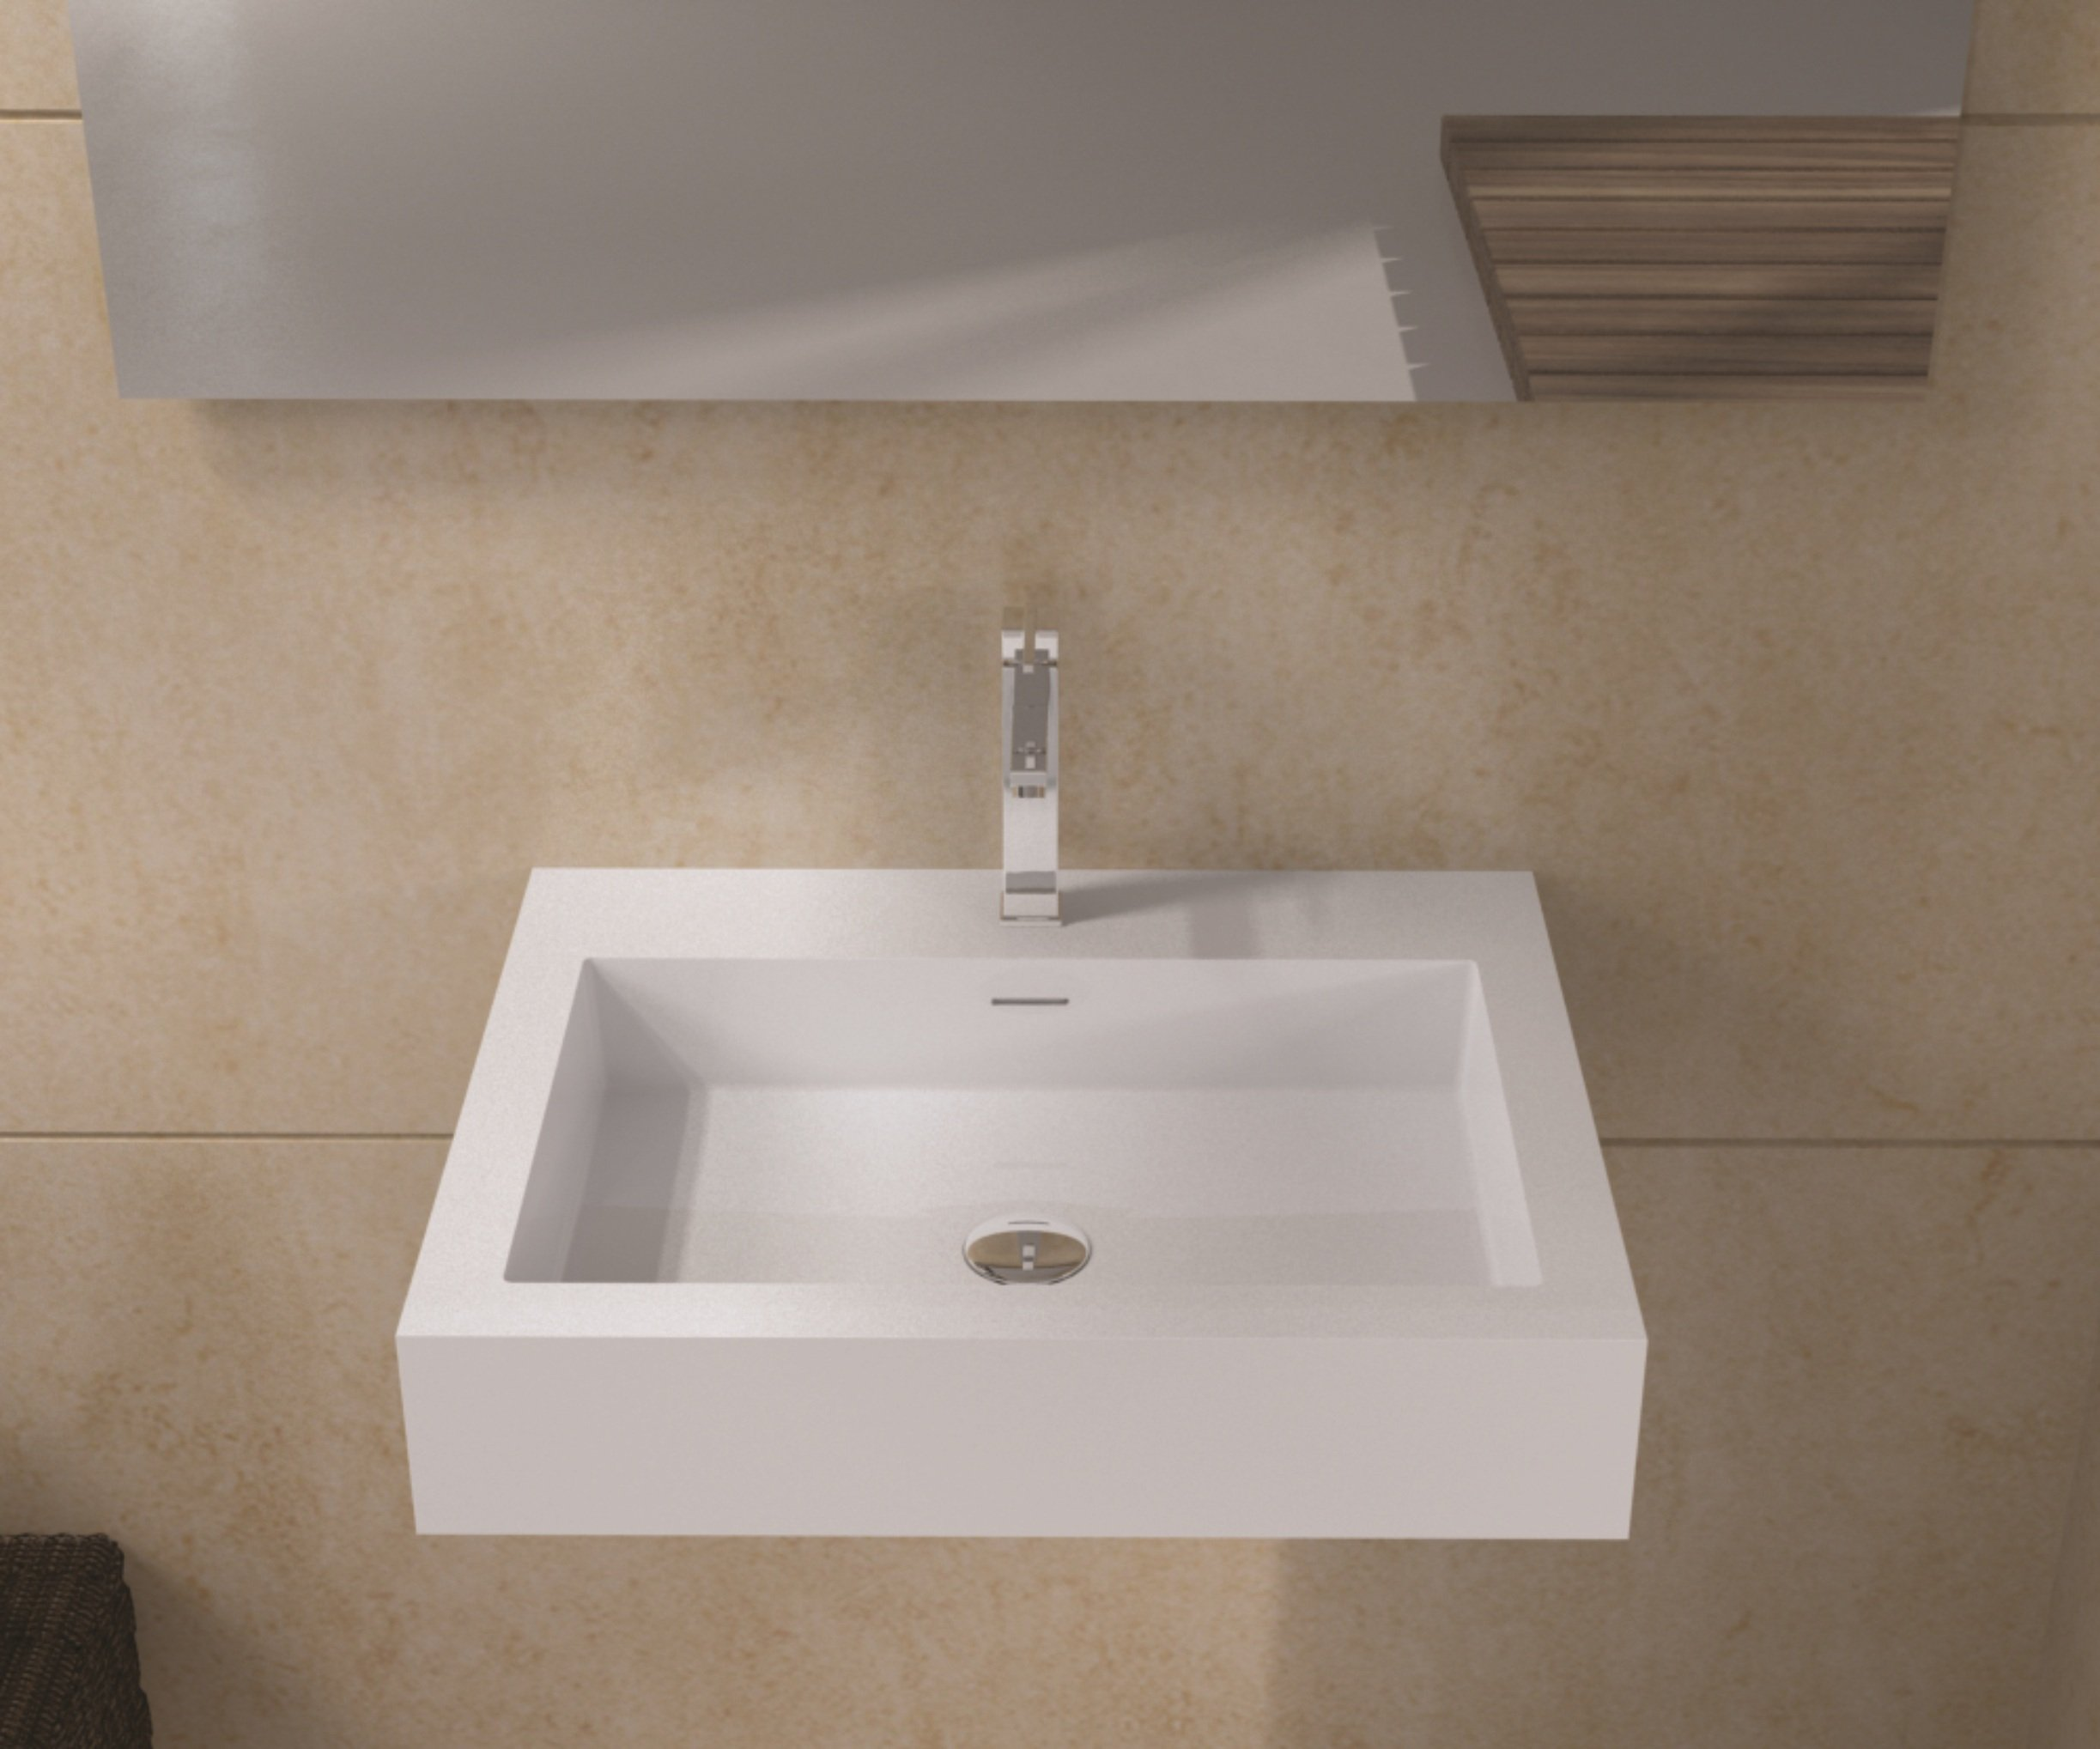 ADM Bathroom Design Wall Hung Sink Matte White DW-133 by ADM